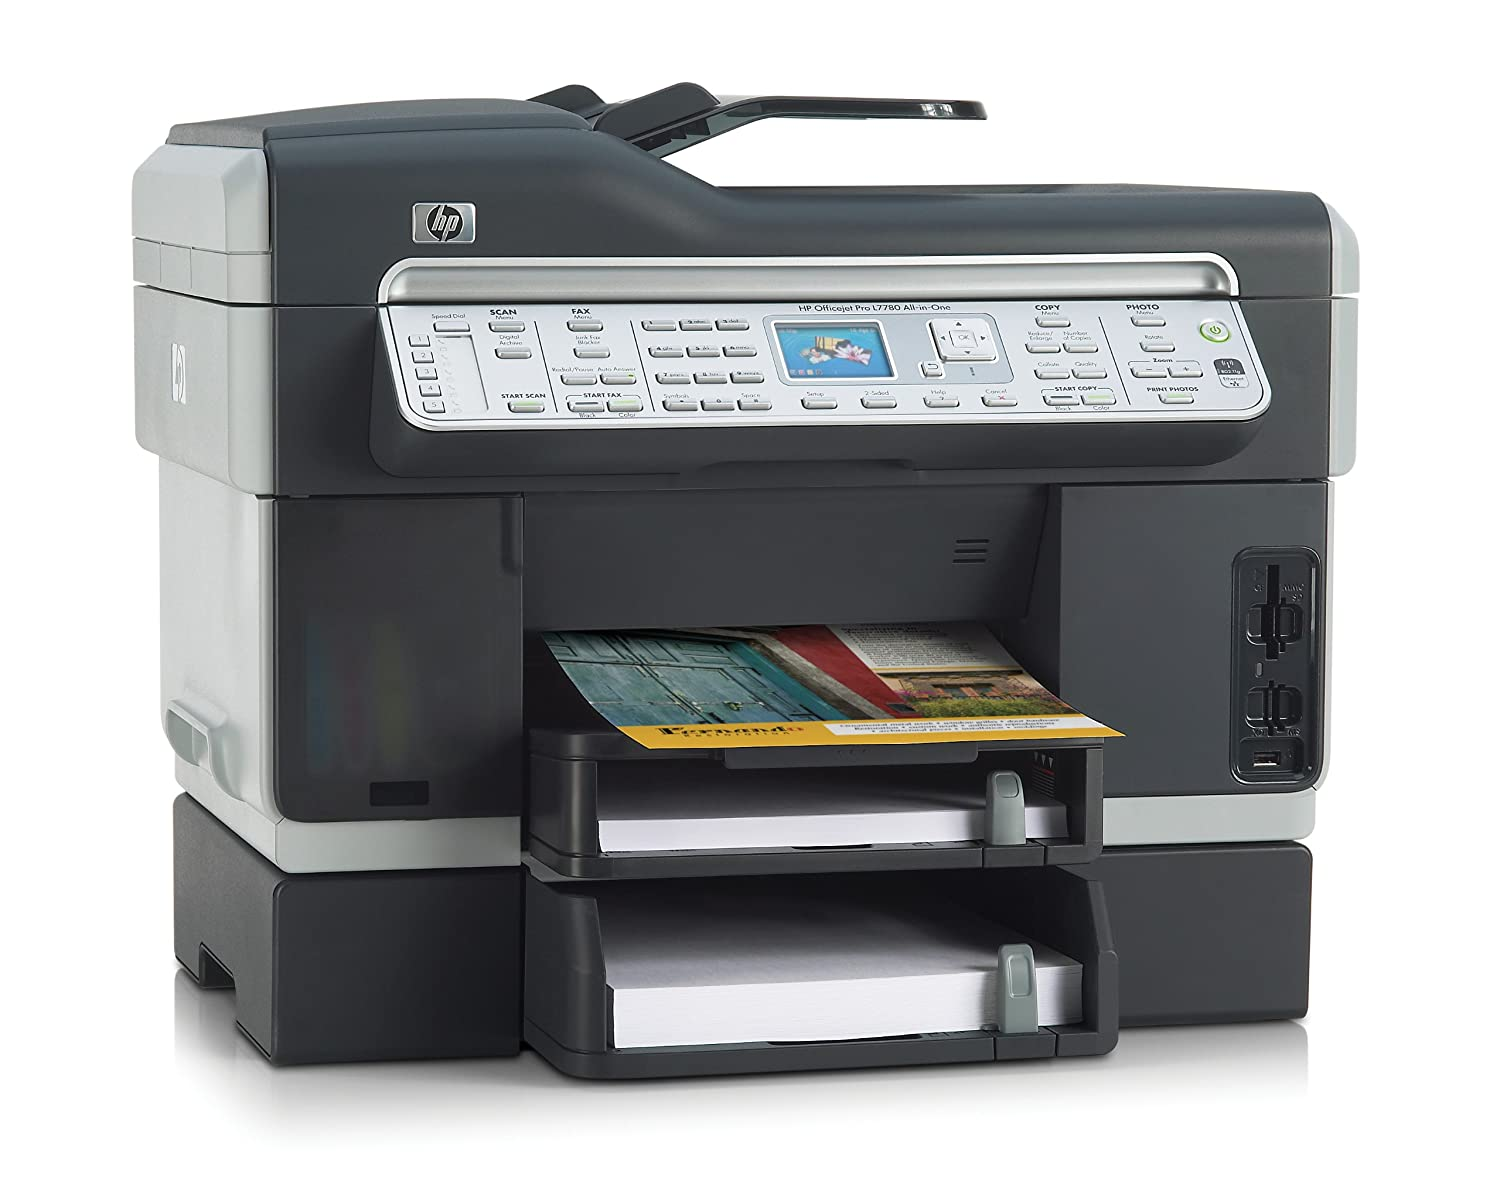 Amazon.com: HP Officejet Pro L7780 Color All-in-One Printer/Fax/Scanner/Copier  (C8192A#ABA): Electronics